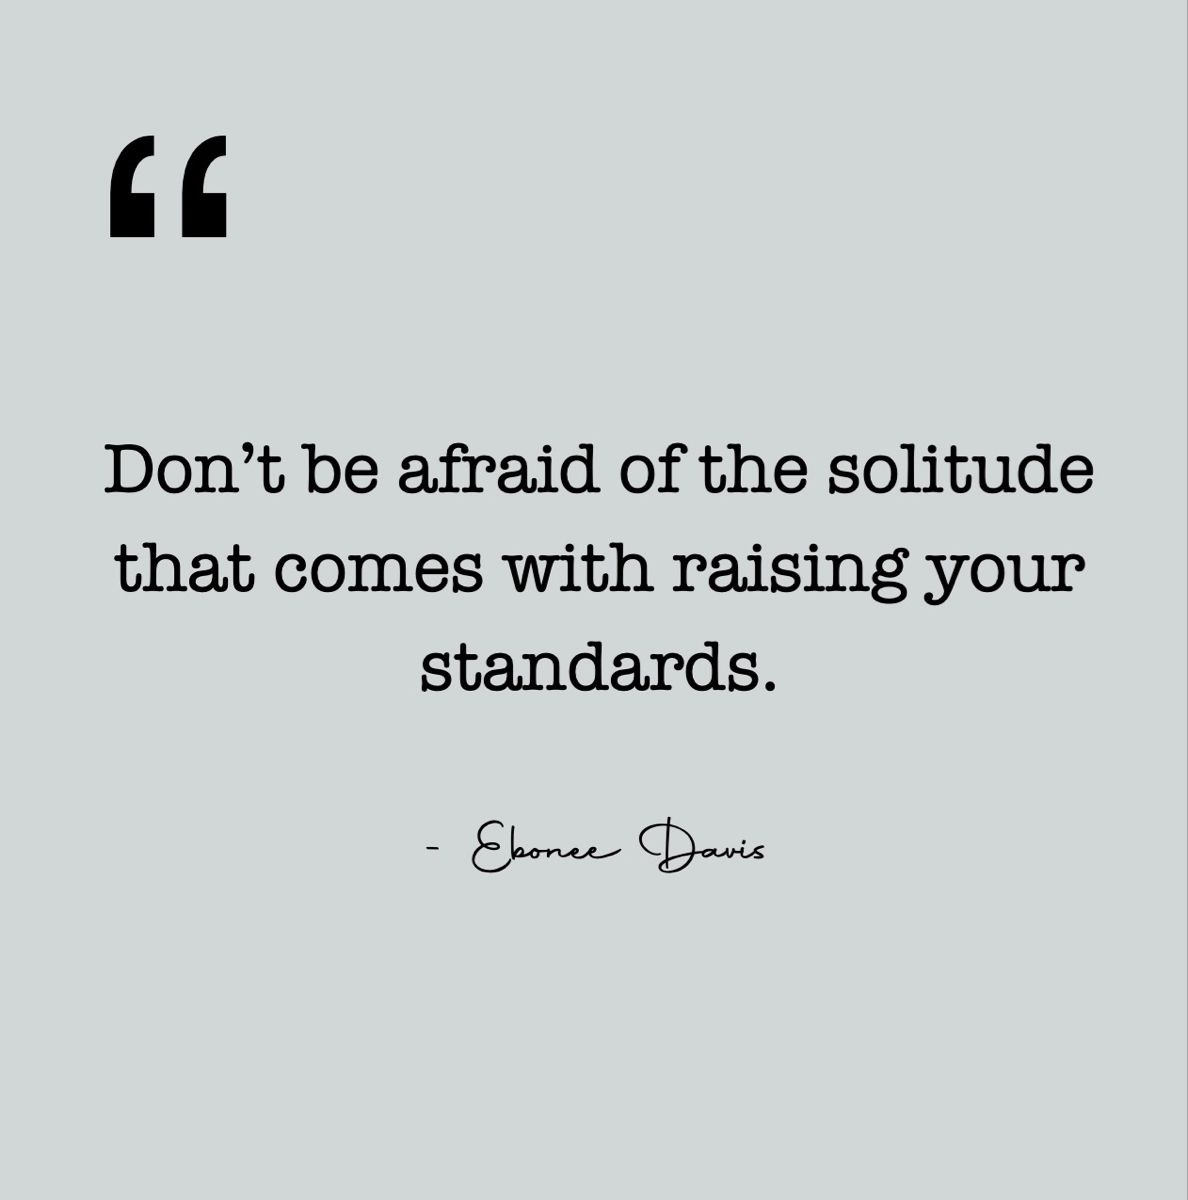 Don't be afraid of the solitude that comes with raising your standards.